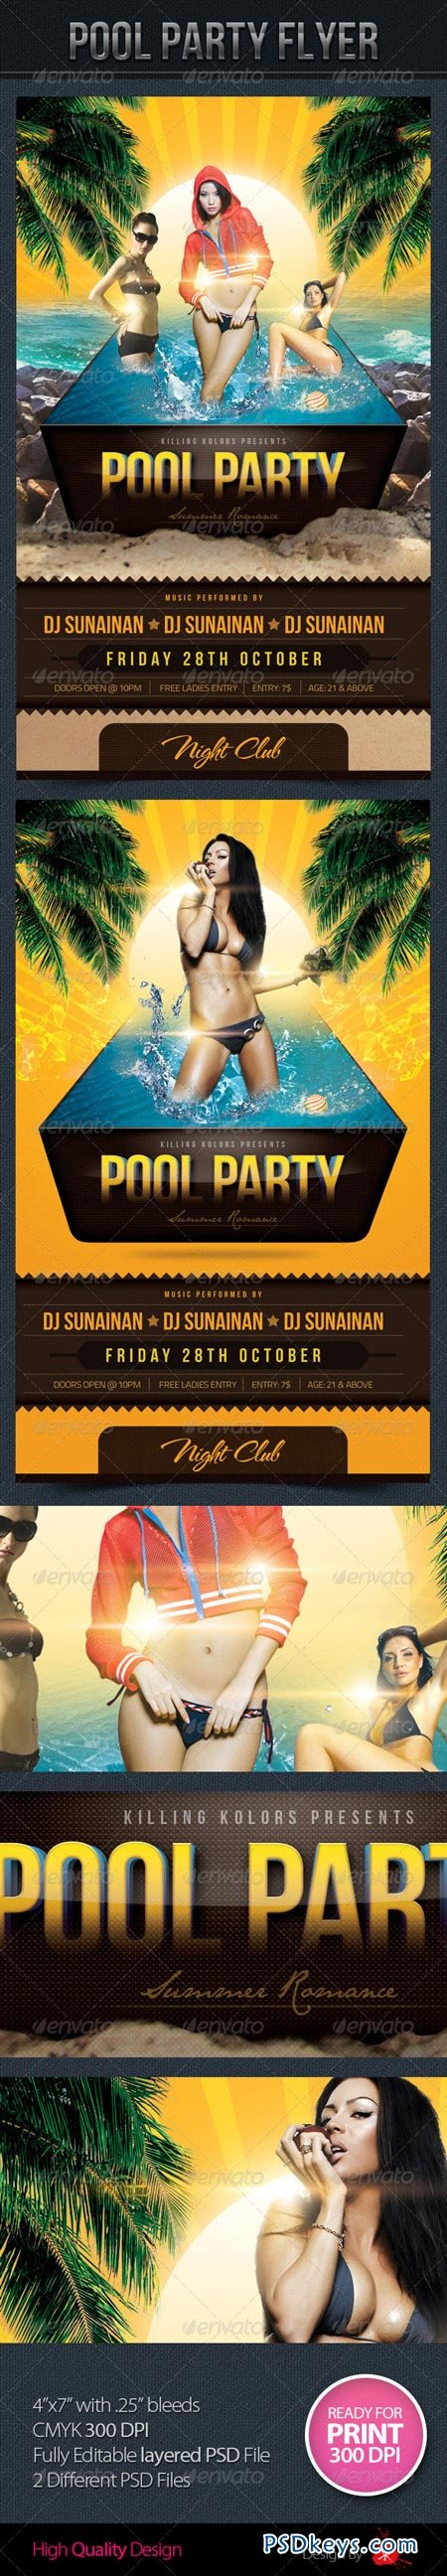 Pool Party Flyer 3188572